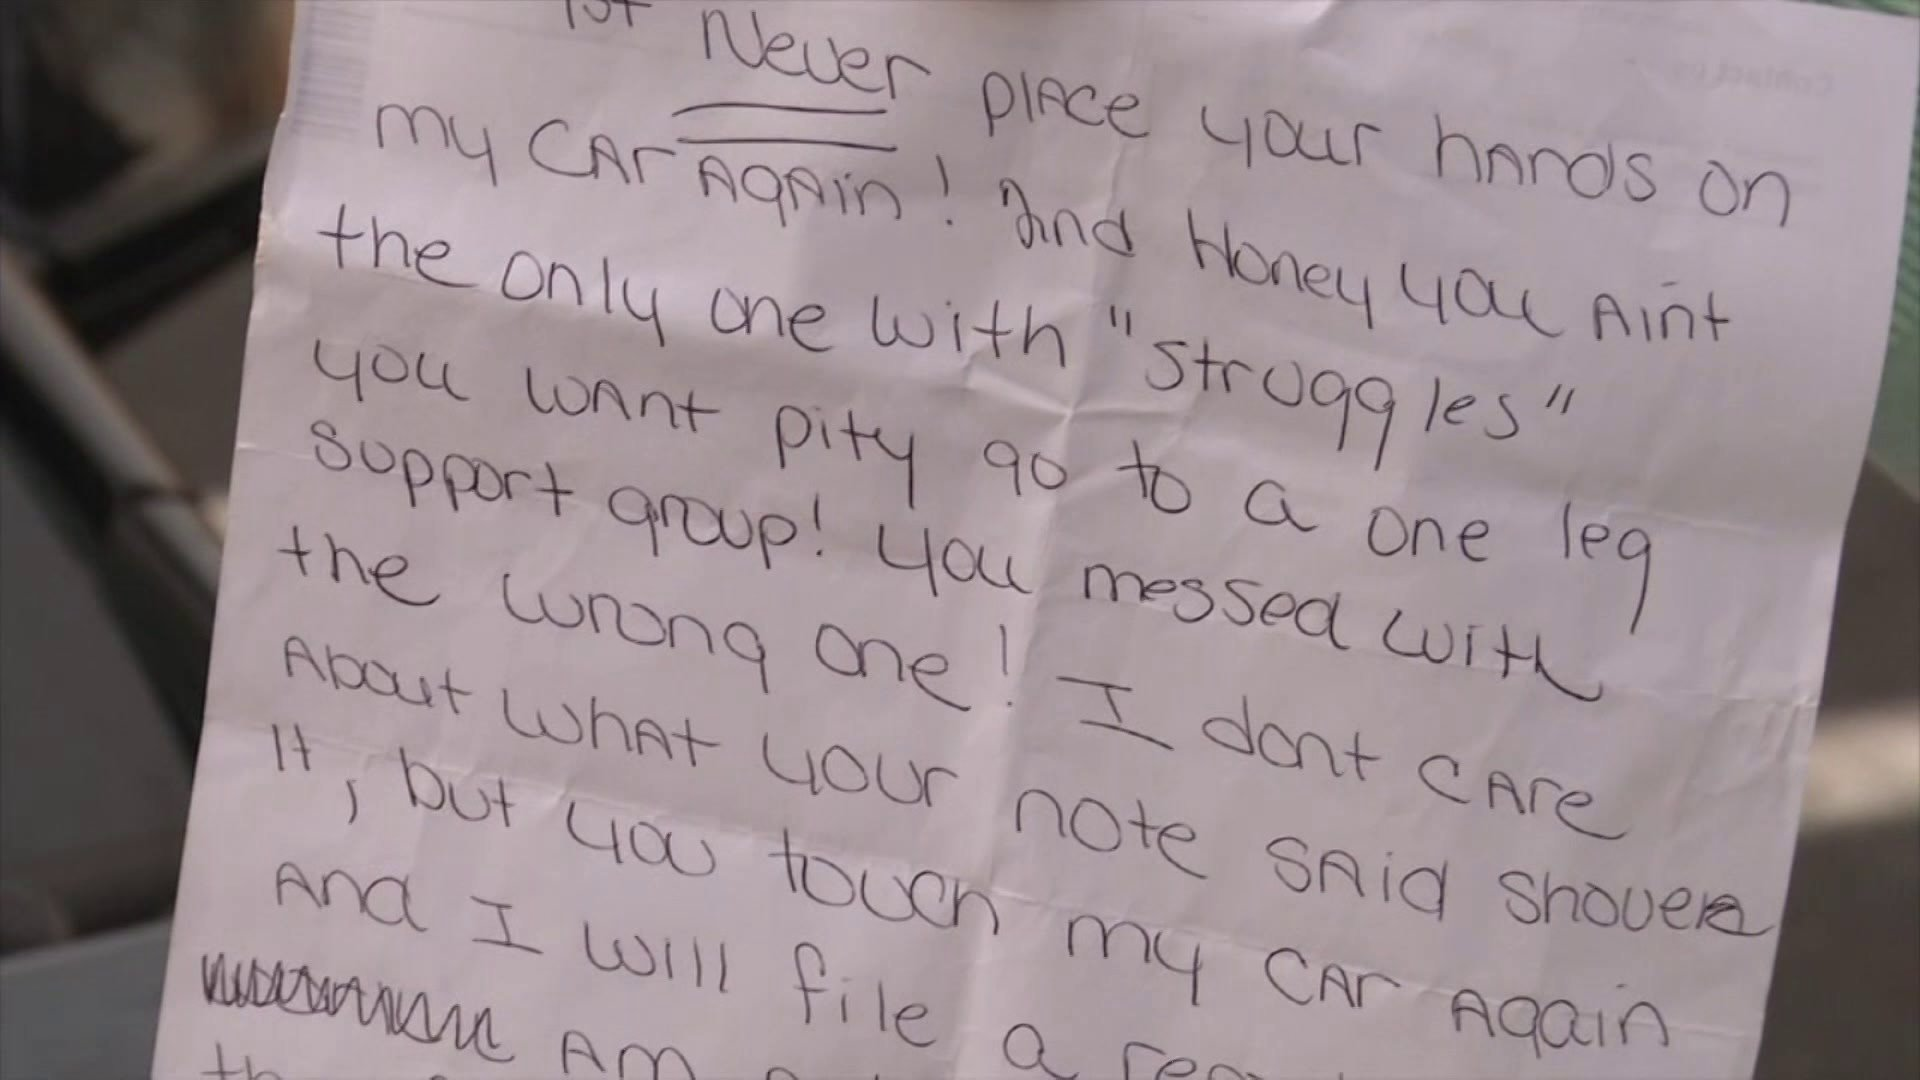 The letter left on Ashley's car. (PHOTO: Facebook)